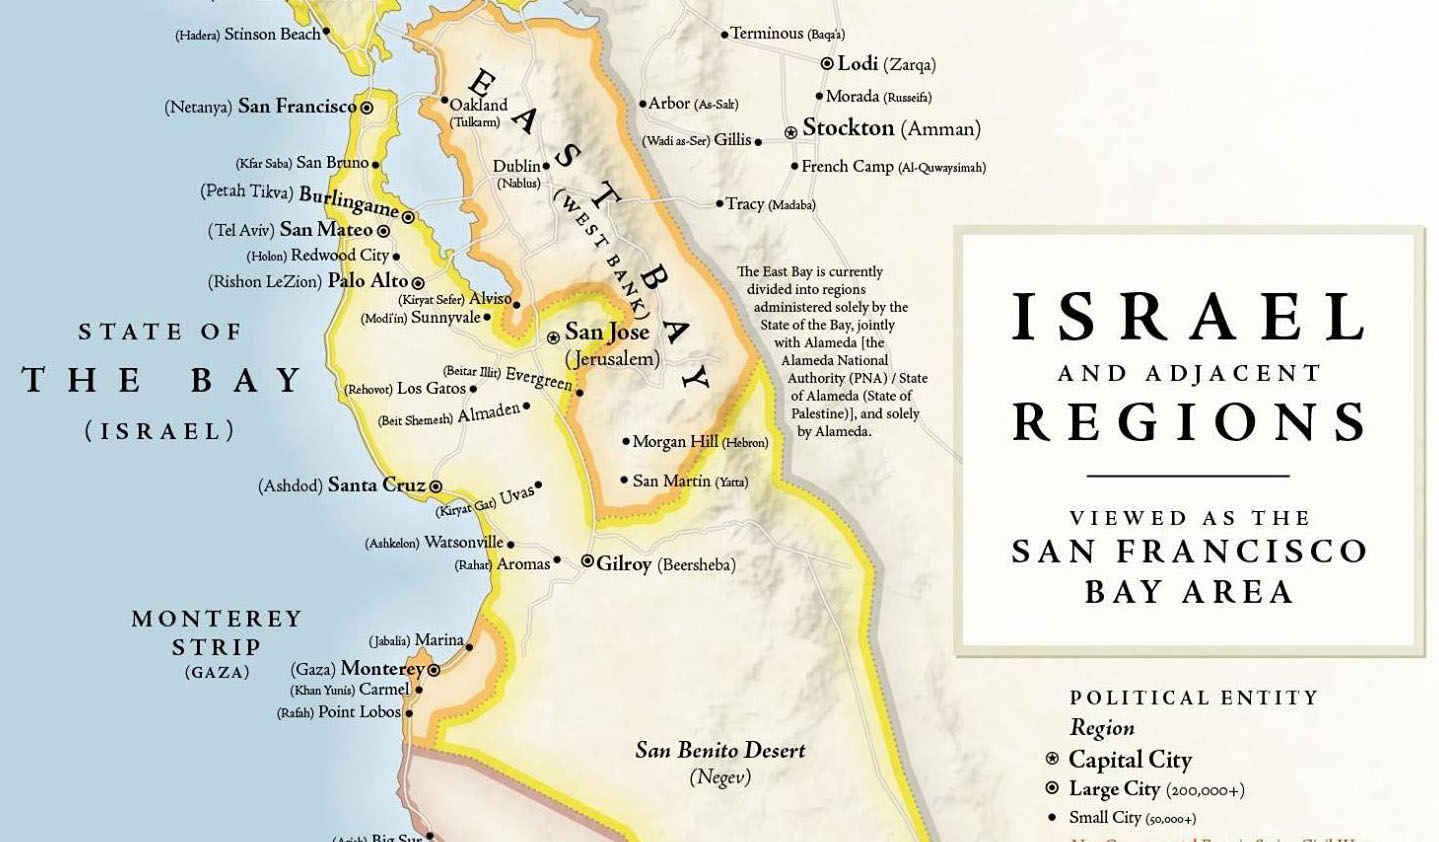 Israel/Bay Area cartographic mashup is fun, but sobering – J.